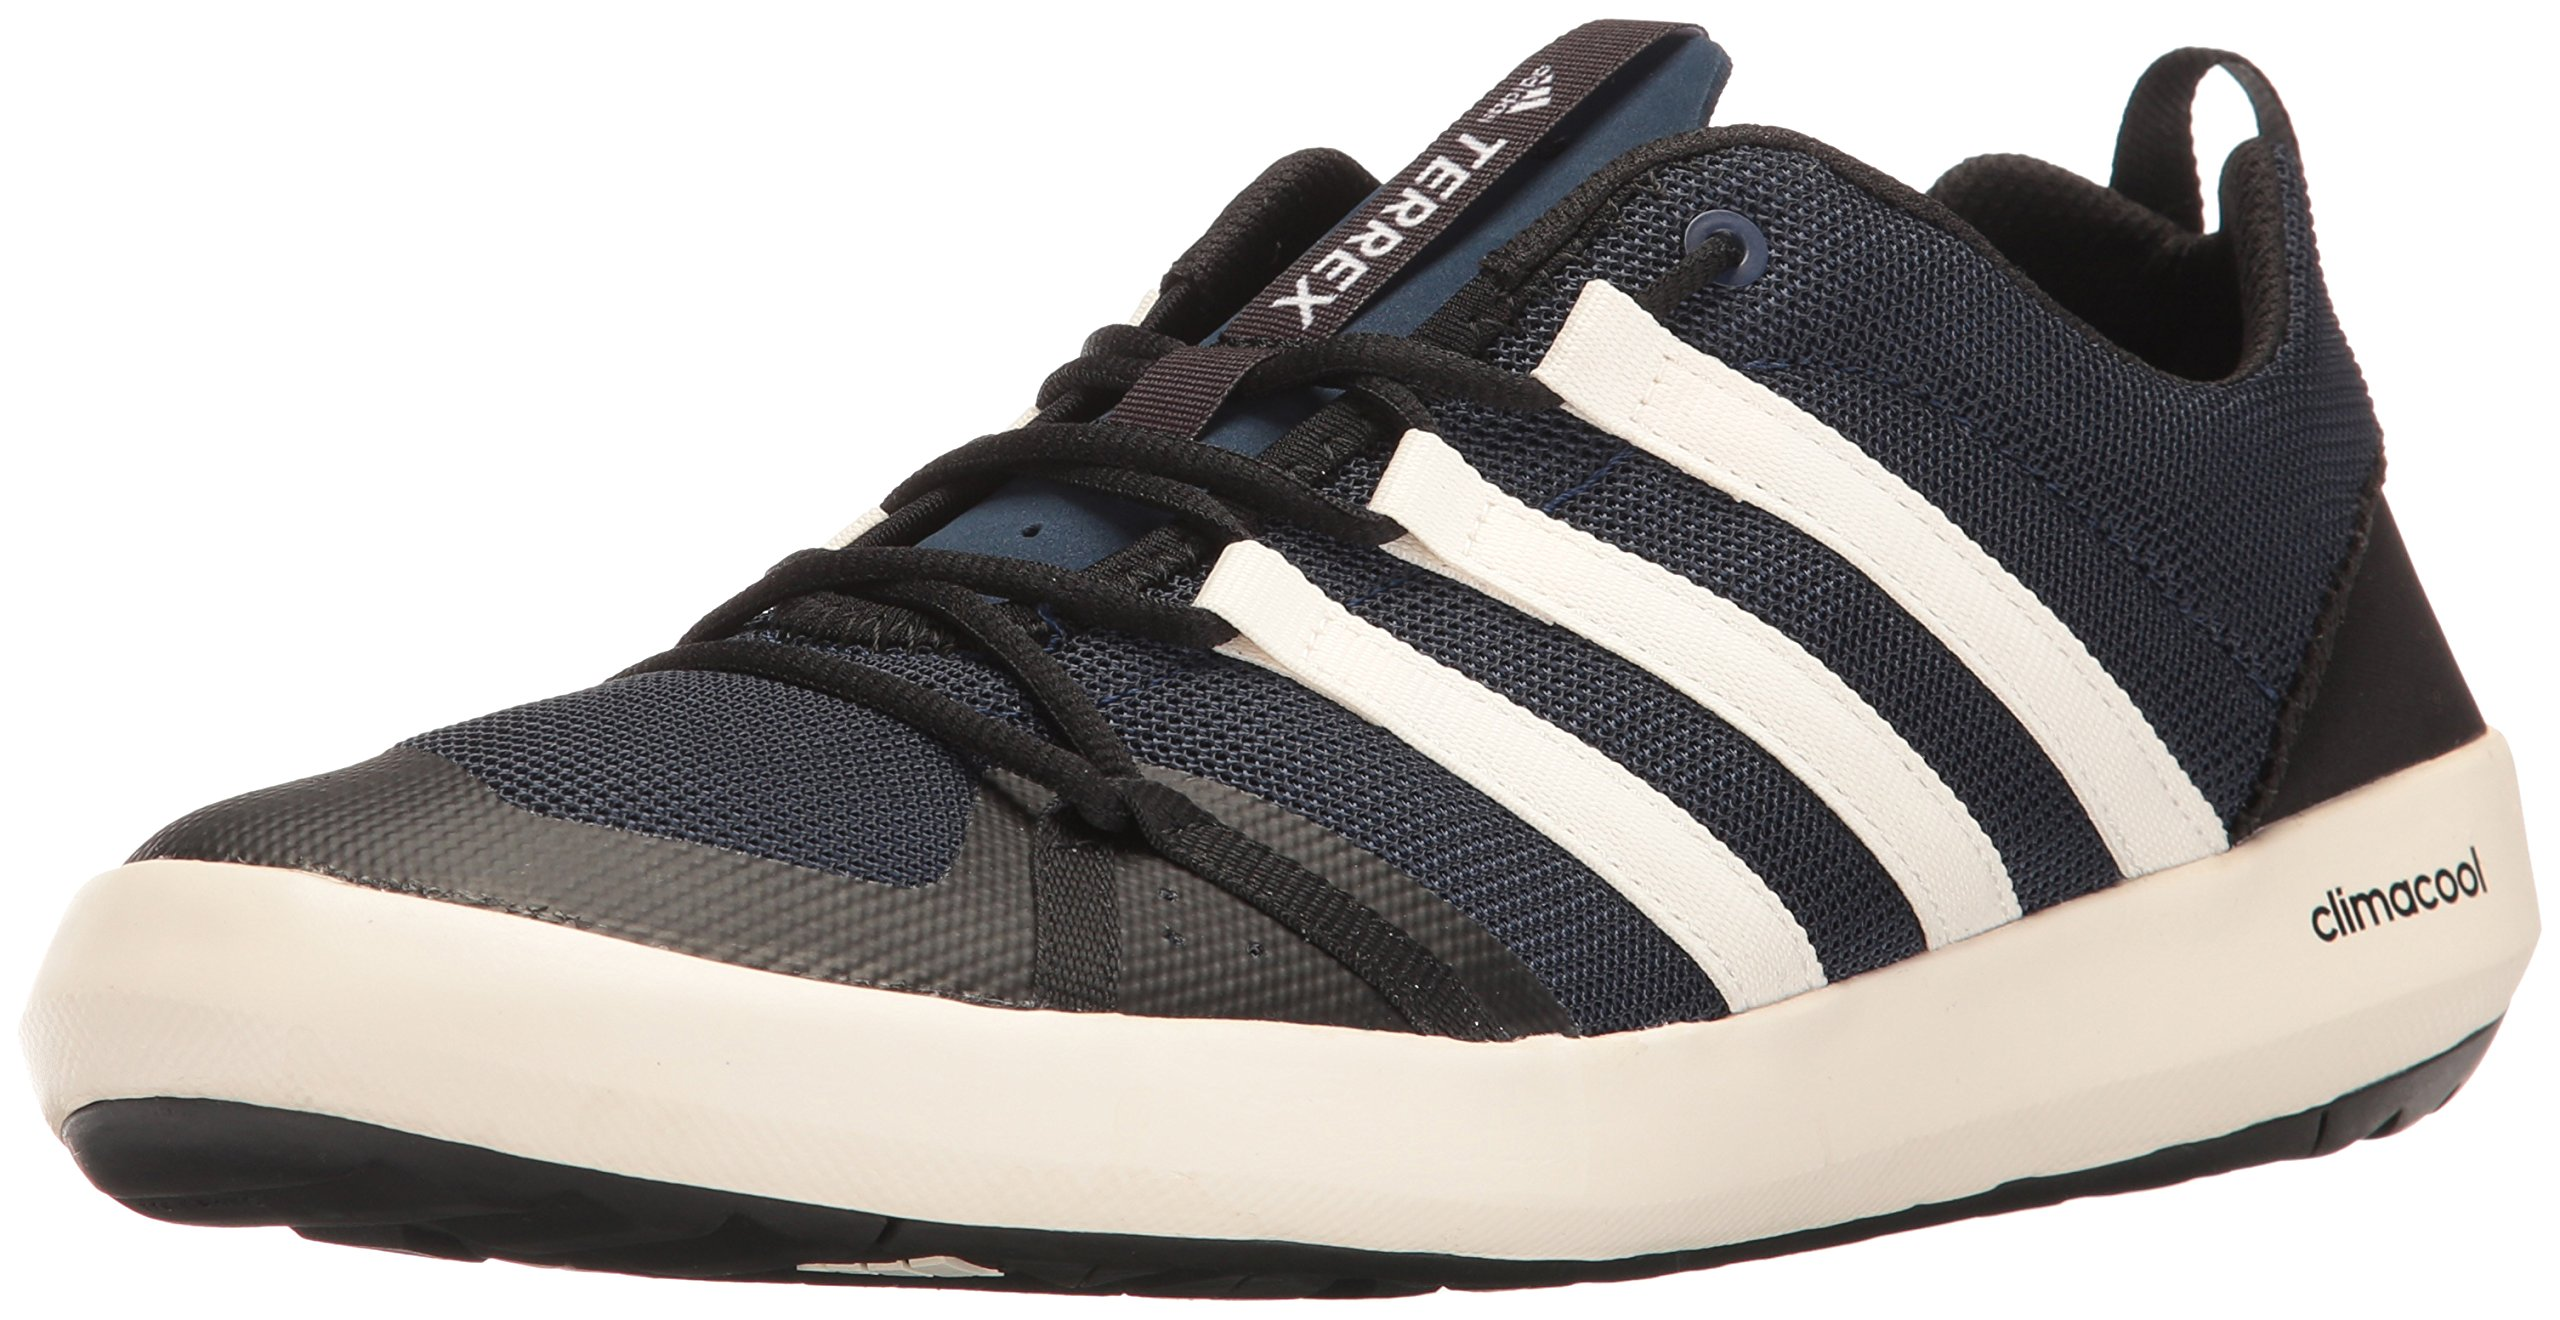 a87ad48a6b7 adidas outdoor Men s Terrex Climacool Boat Water Shoe